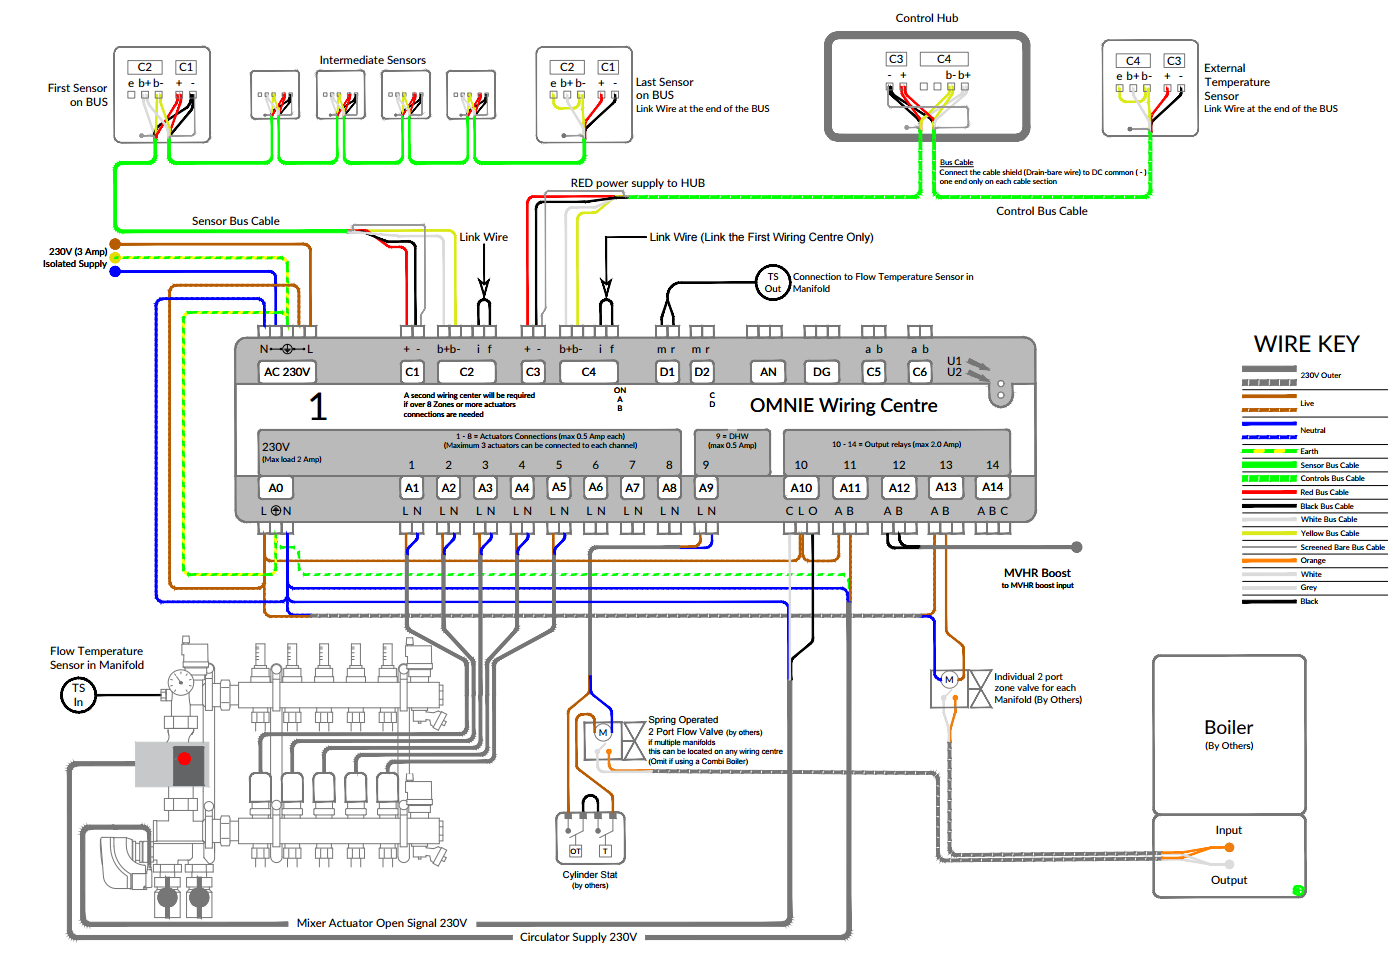 Omnie Network Controls With Electric Mixing Valve For Weather - Electric Heat Wiring Diagram